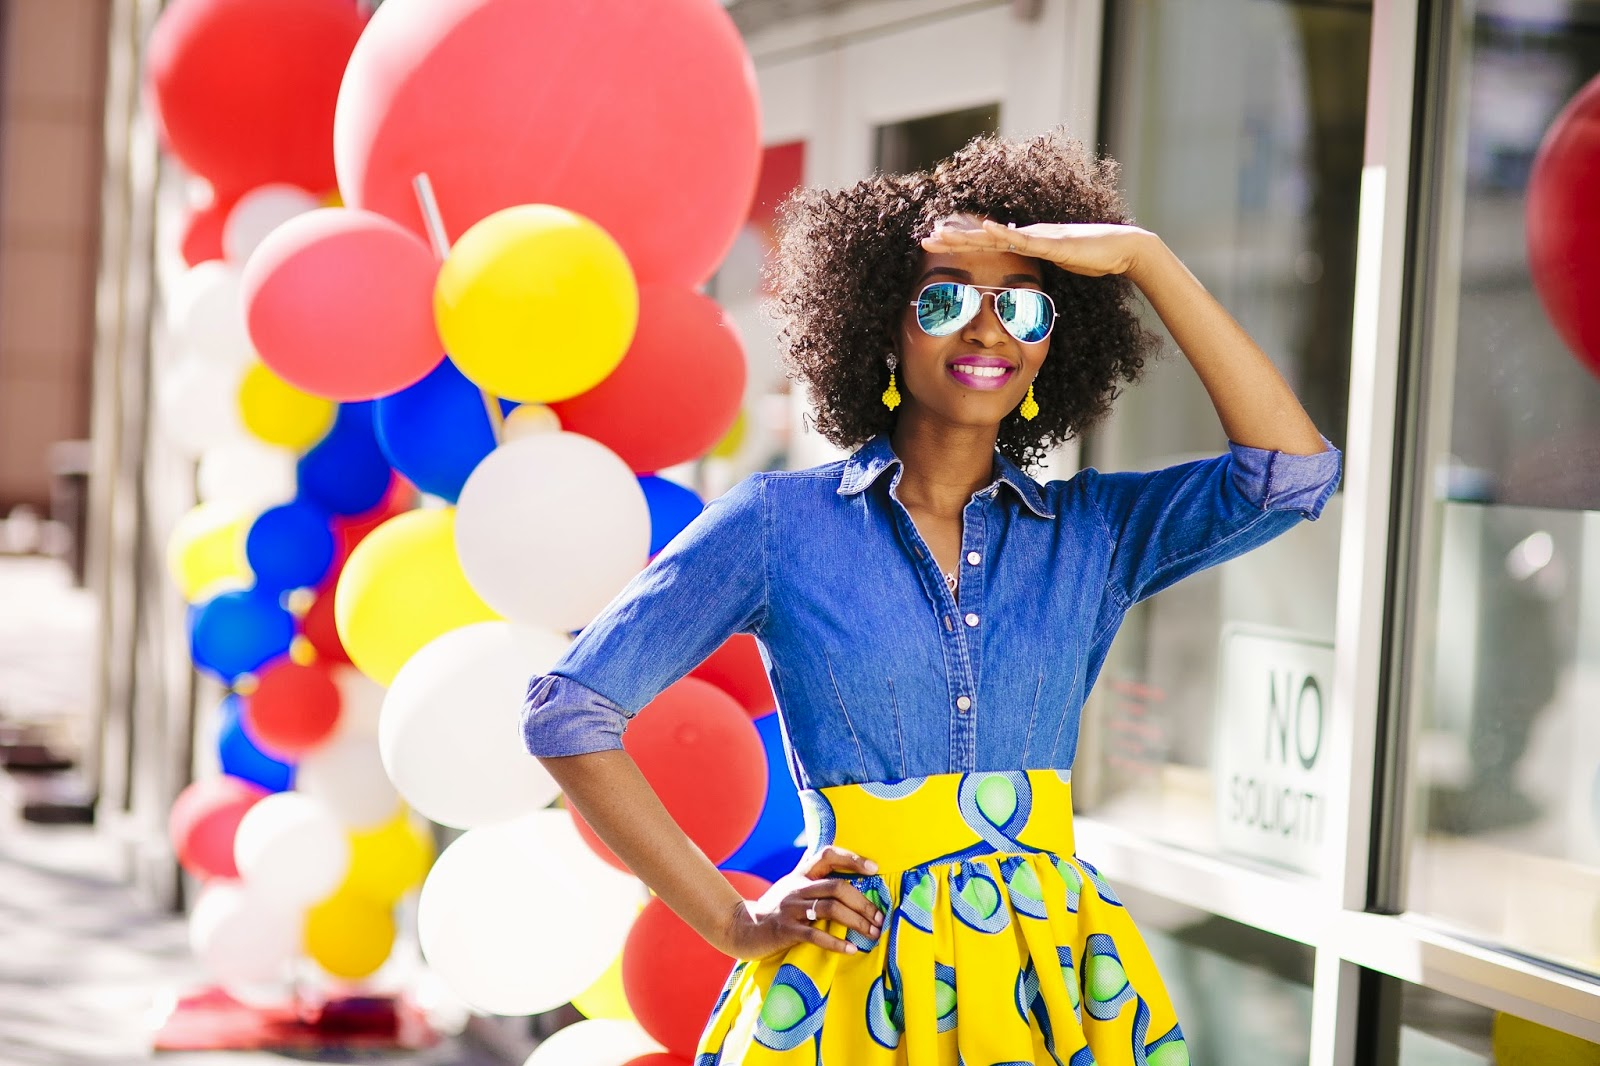 Colorful Ankara Skirt, Fun And Flirty Outfit, Looking Ahead